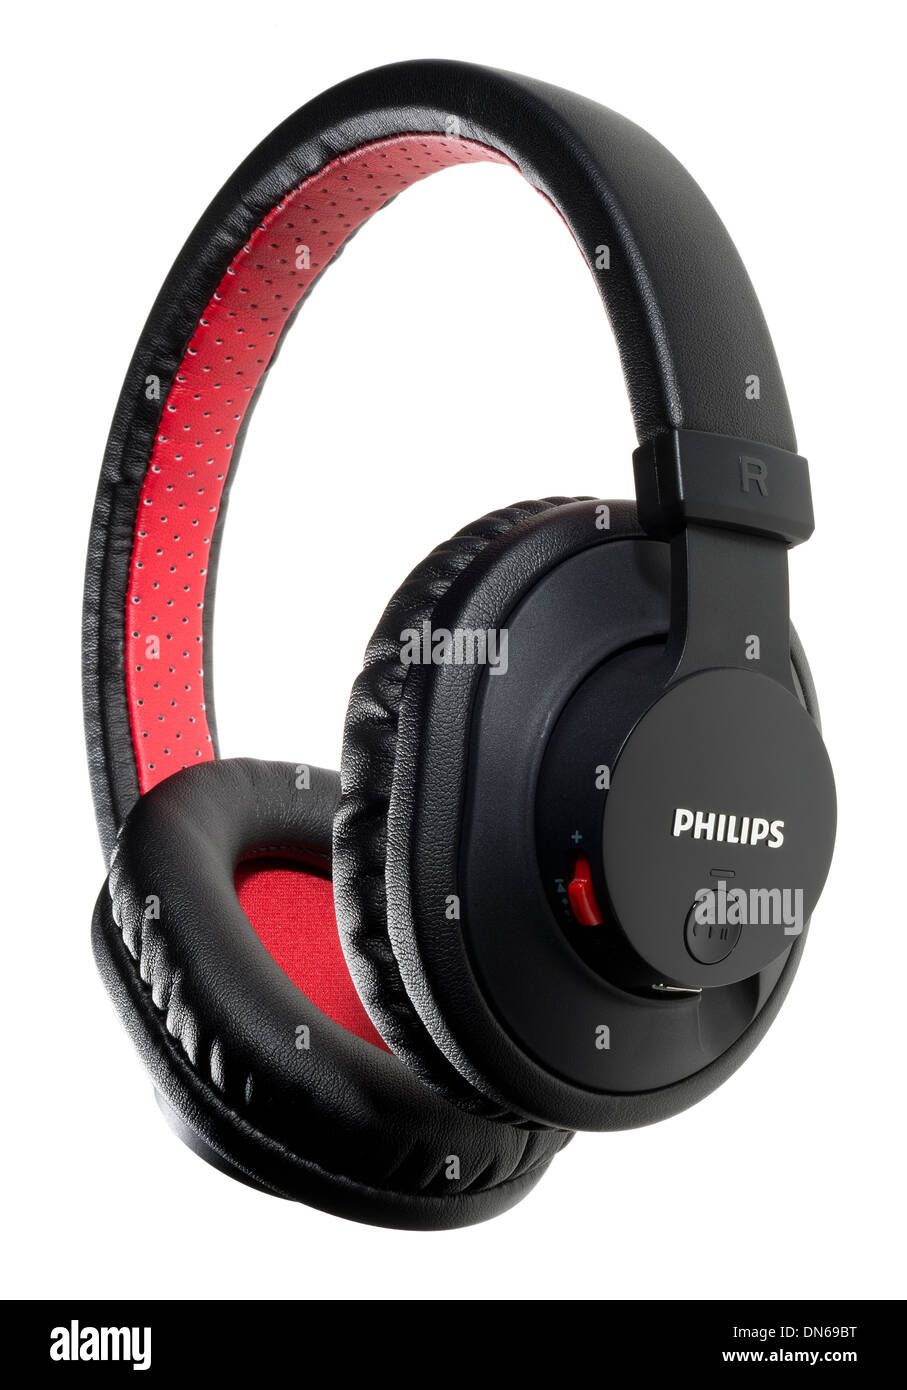 A pair of Philips headphones - Stock Image